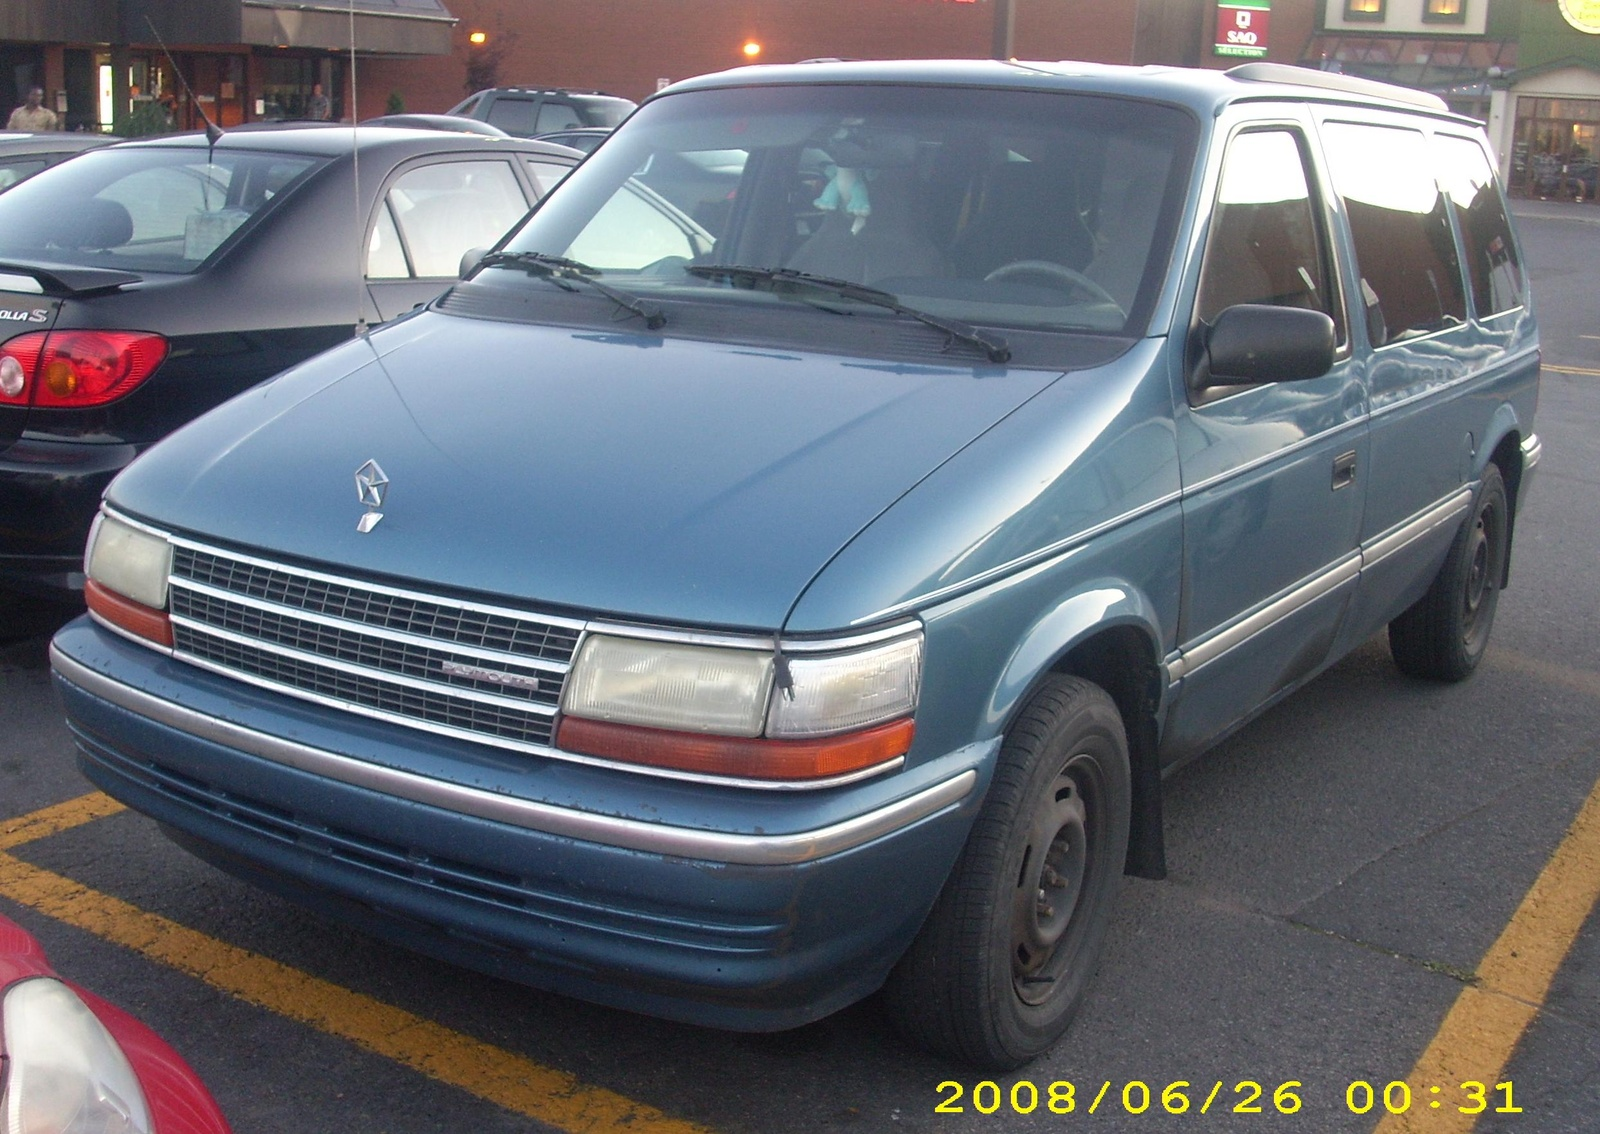 Chrysler Grand Voyager 3.3 1998 photo - 12